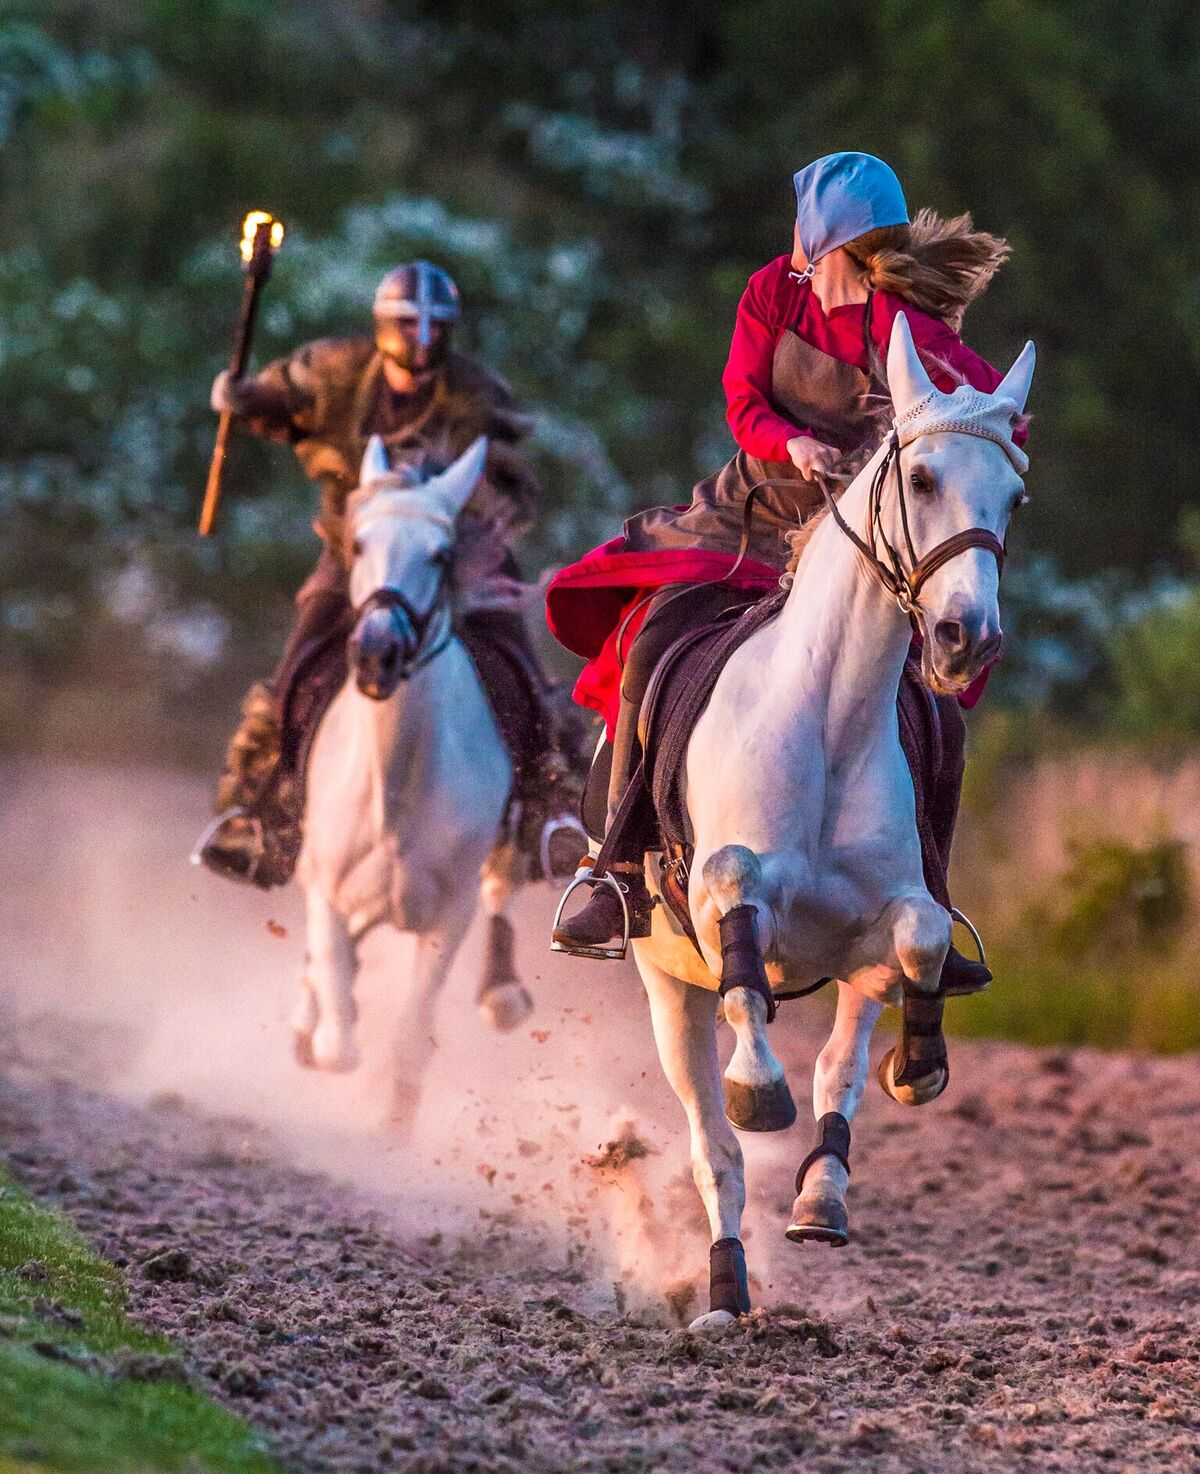 Kynren features plenty of action scenes